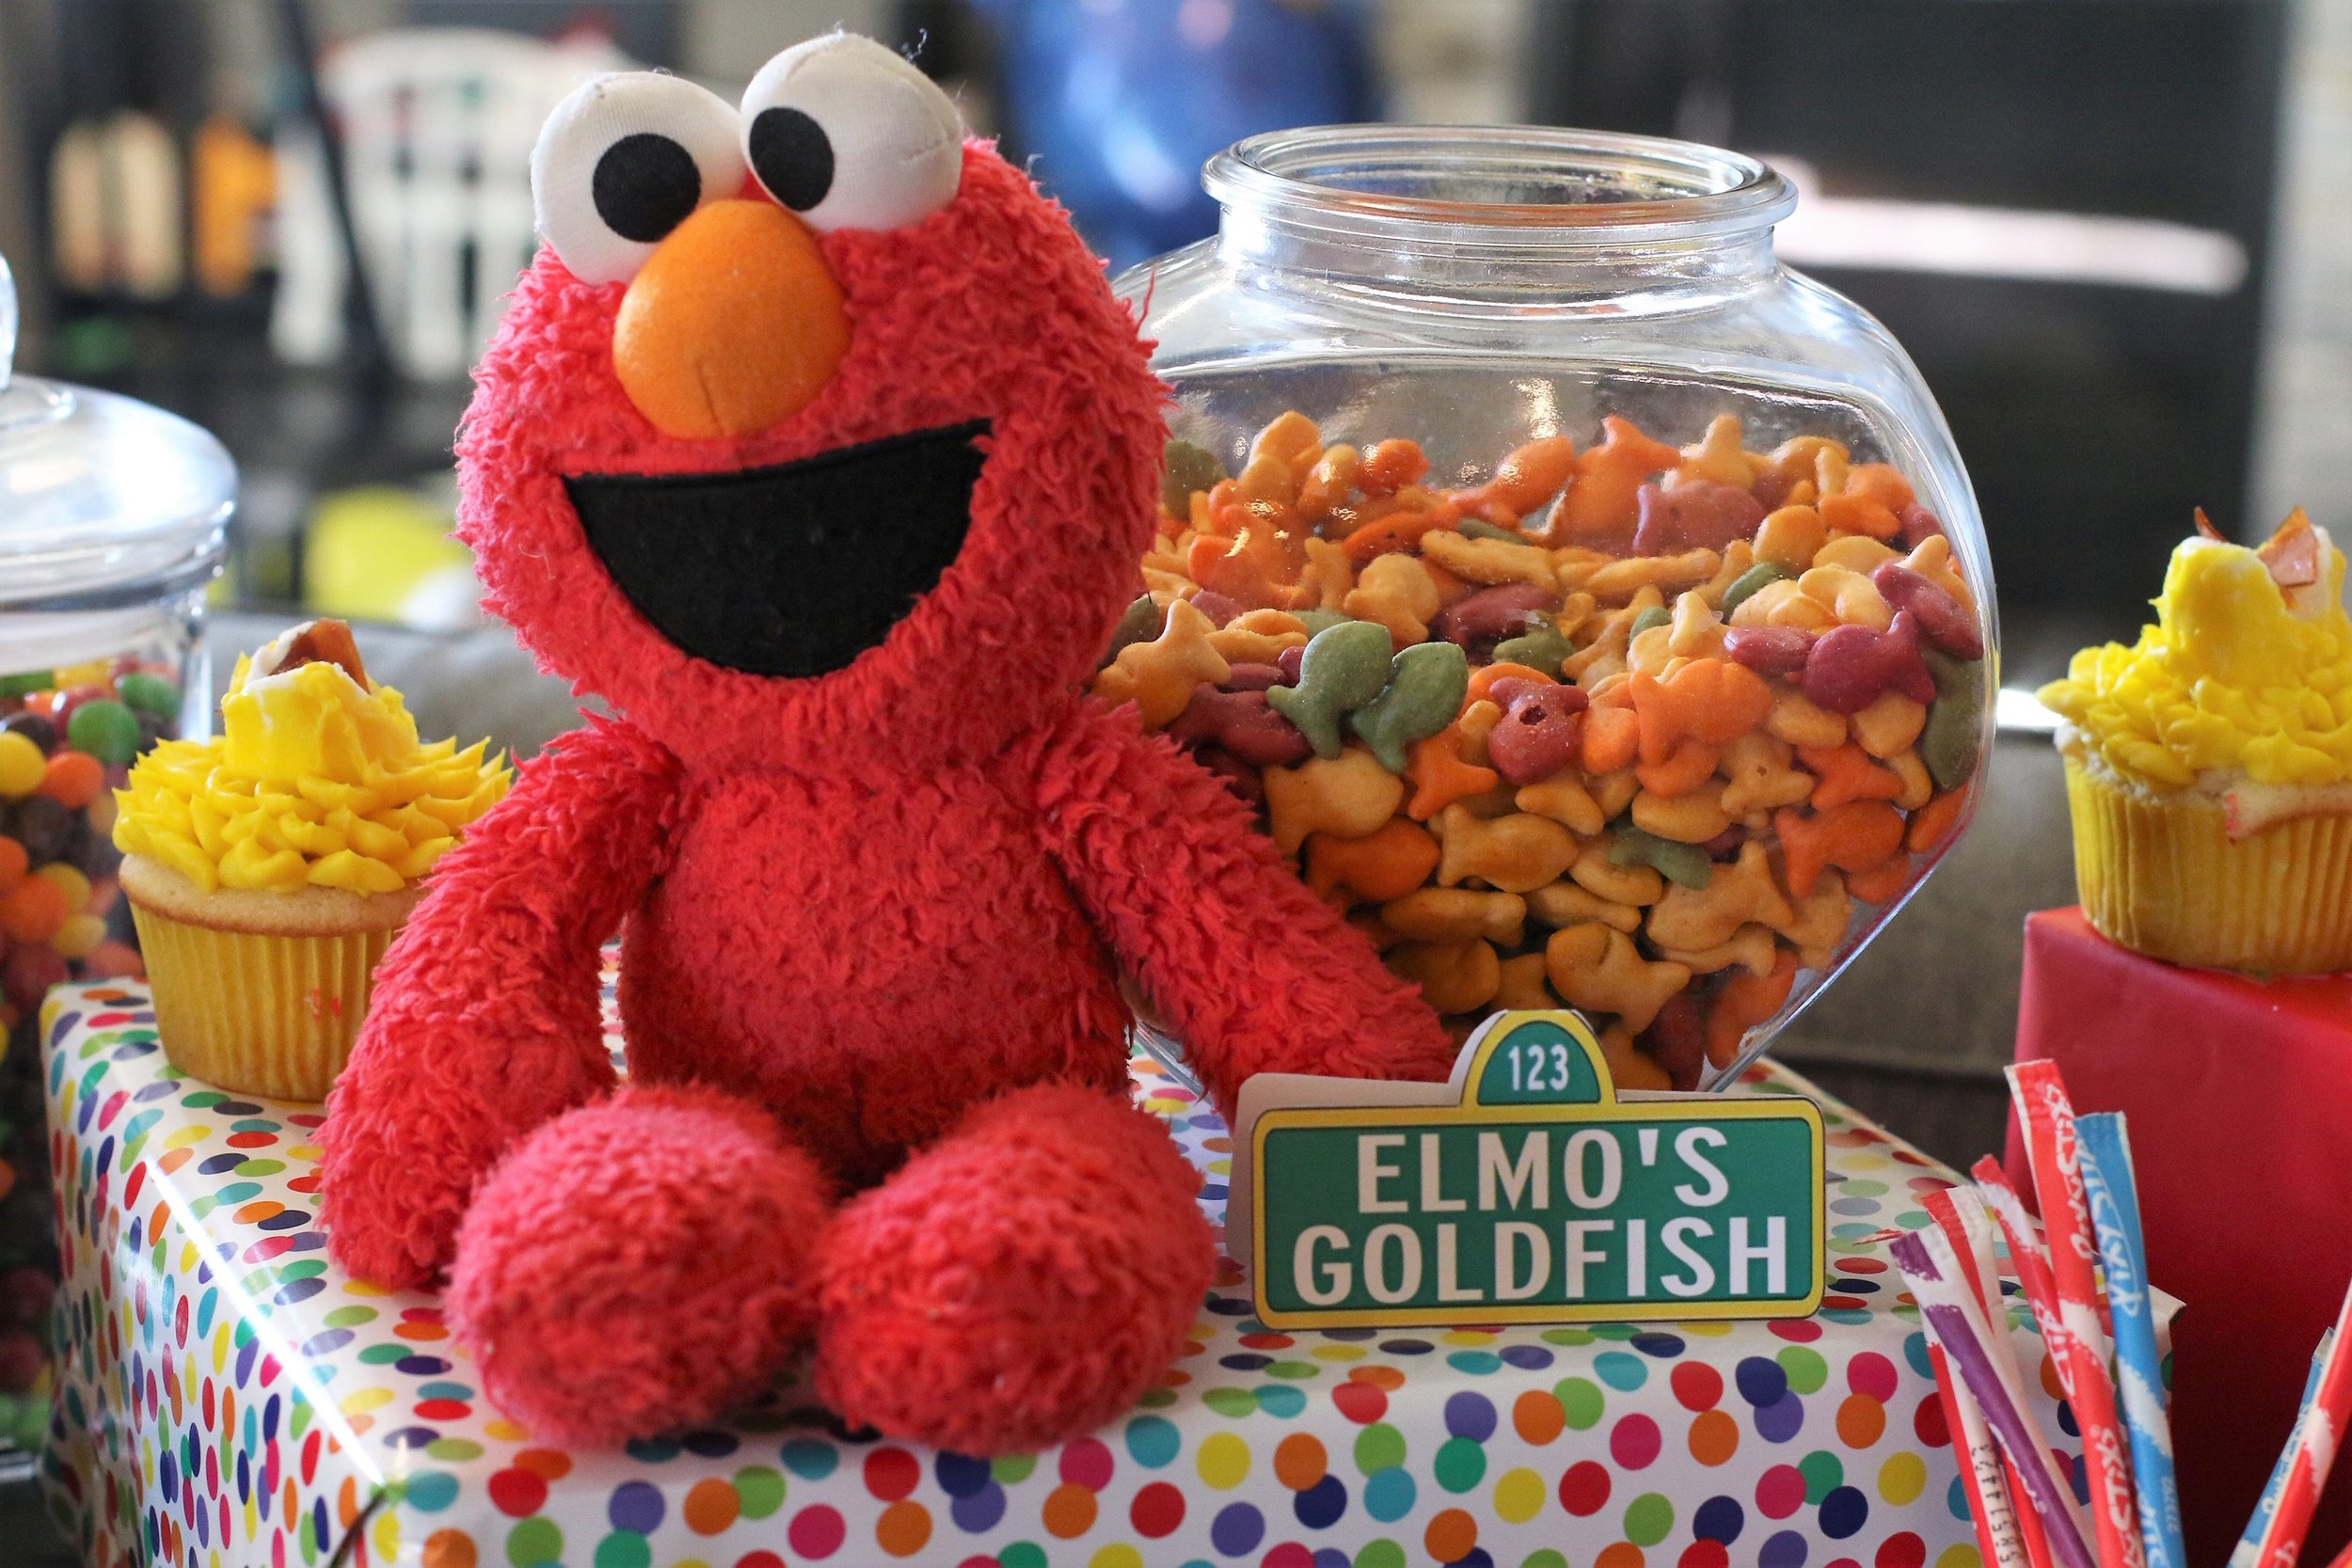 Elmo with his Goldfish. If you've seen Sesame Street, you know Elmo has a pet fish named Dorothy.